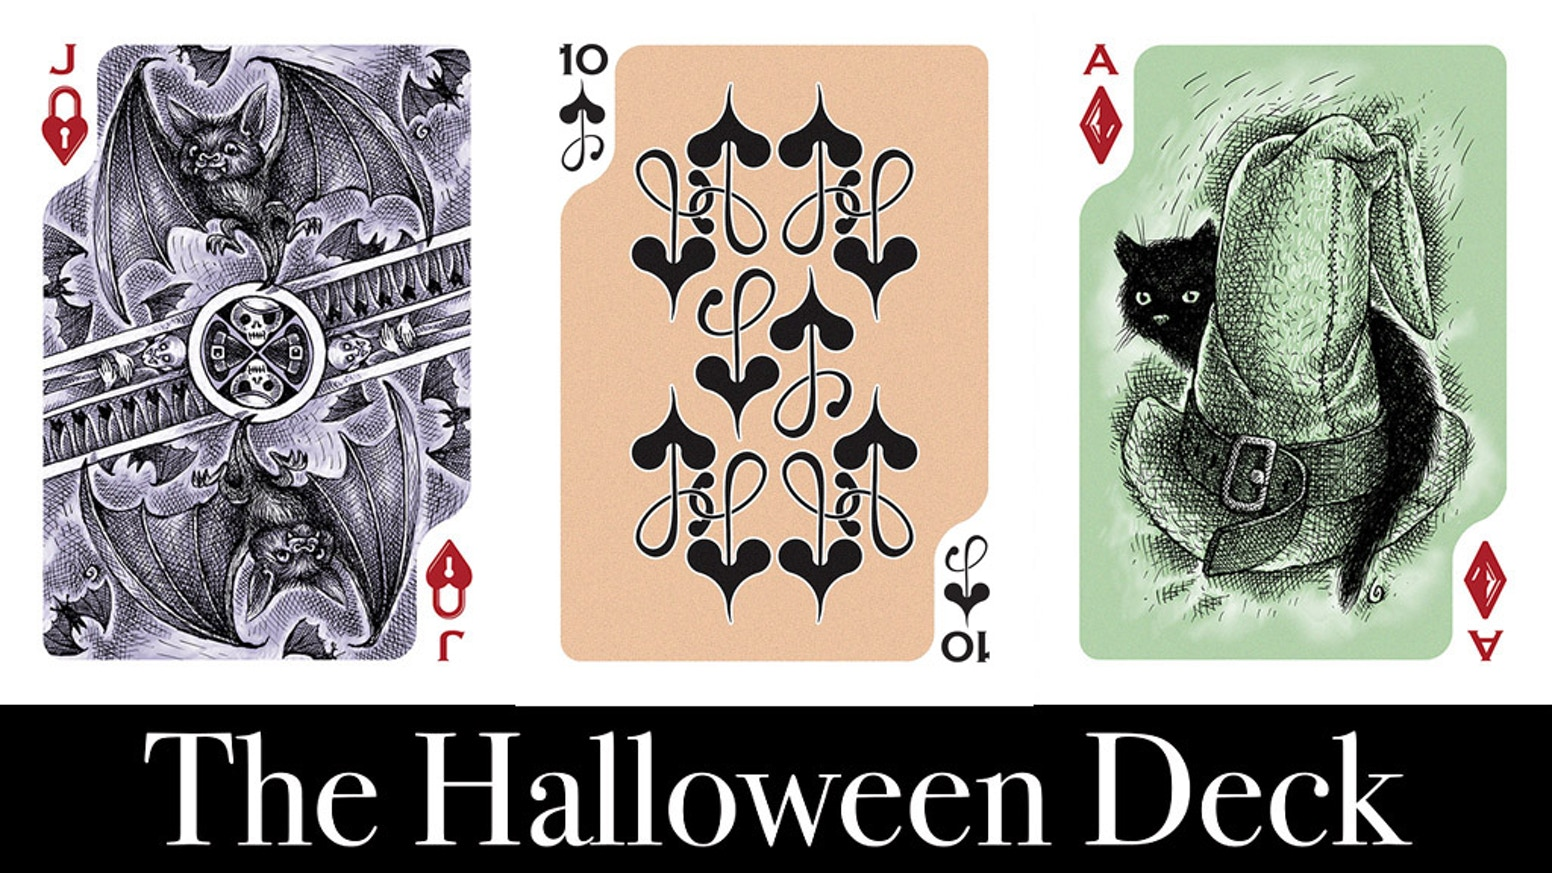 A deck of playing cards with a Halloween theme by award-winning Artist Stephen W. Brandt